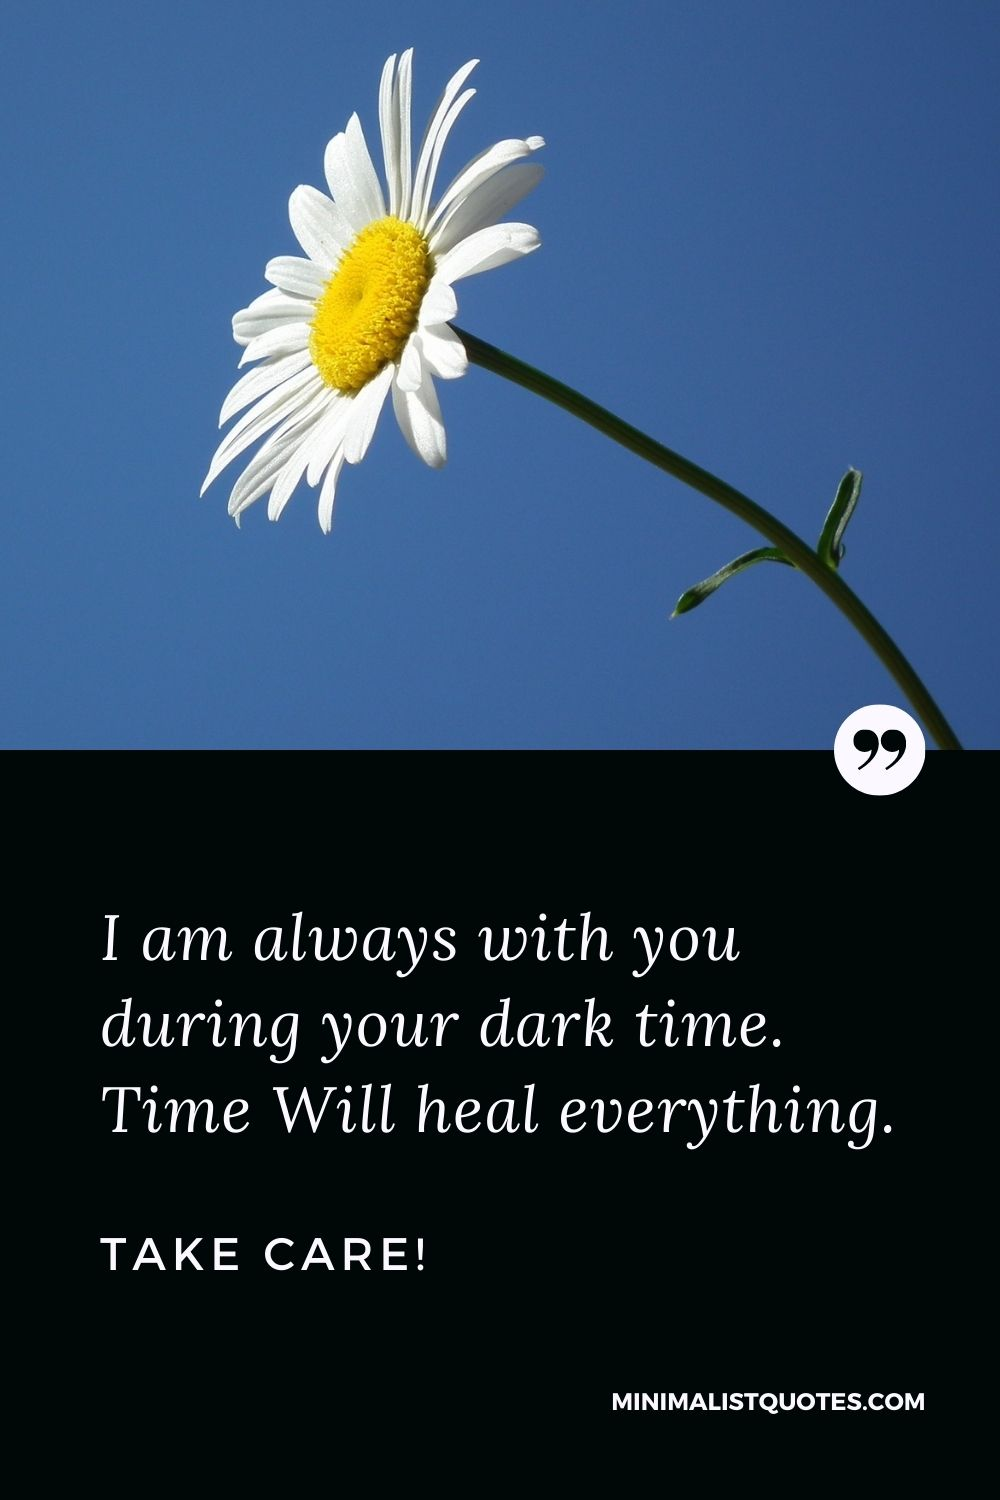 Divorce Quote, Sympathy & Message With Image: I am always with you during your dark time. Time Will heal everything. Take Care!